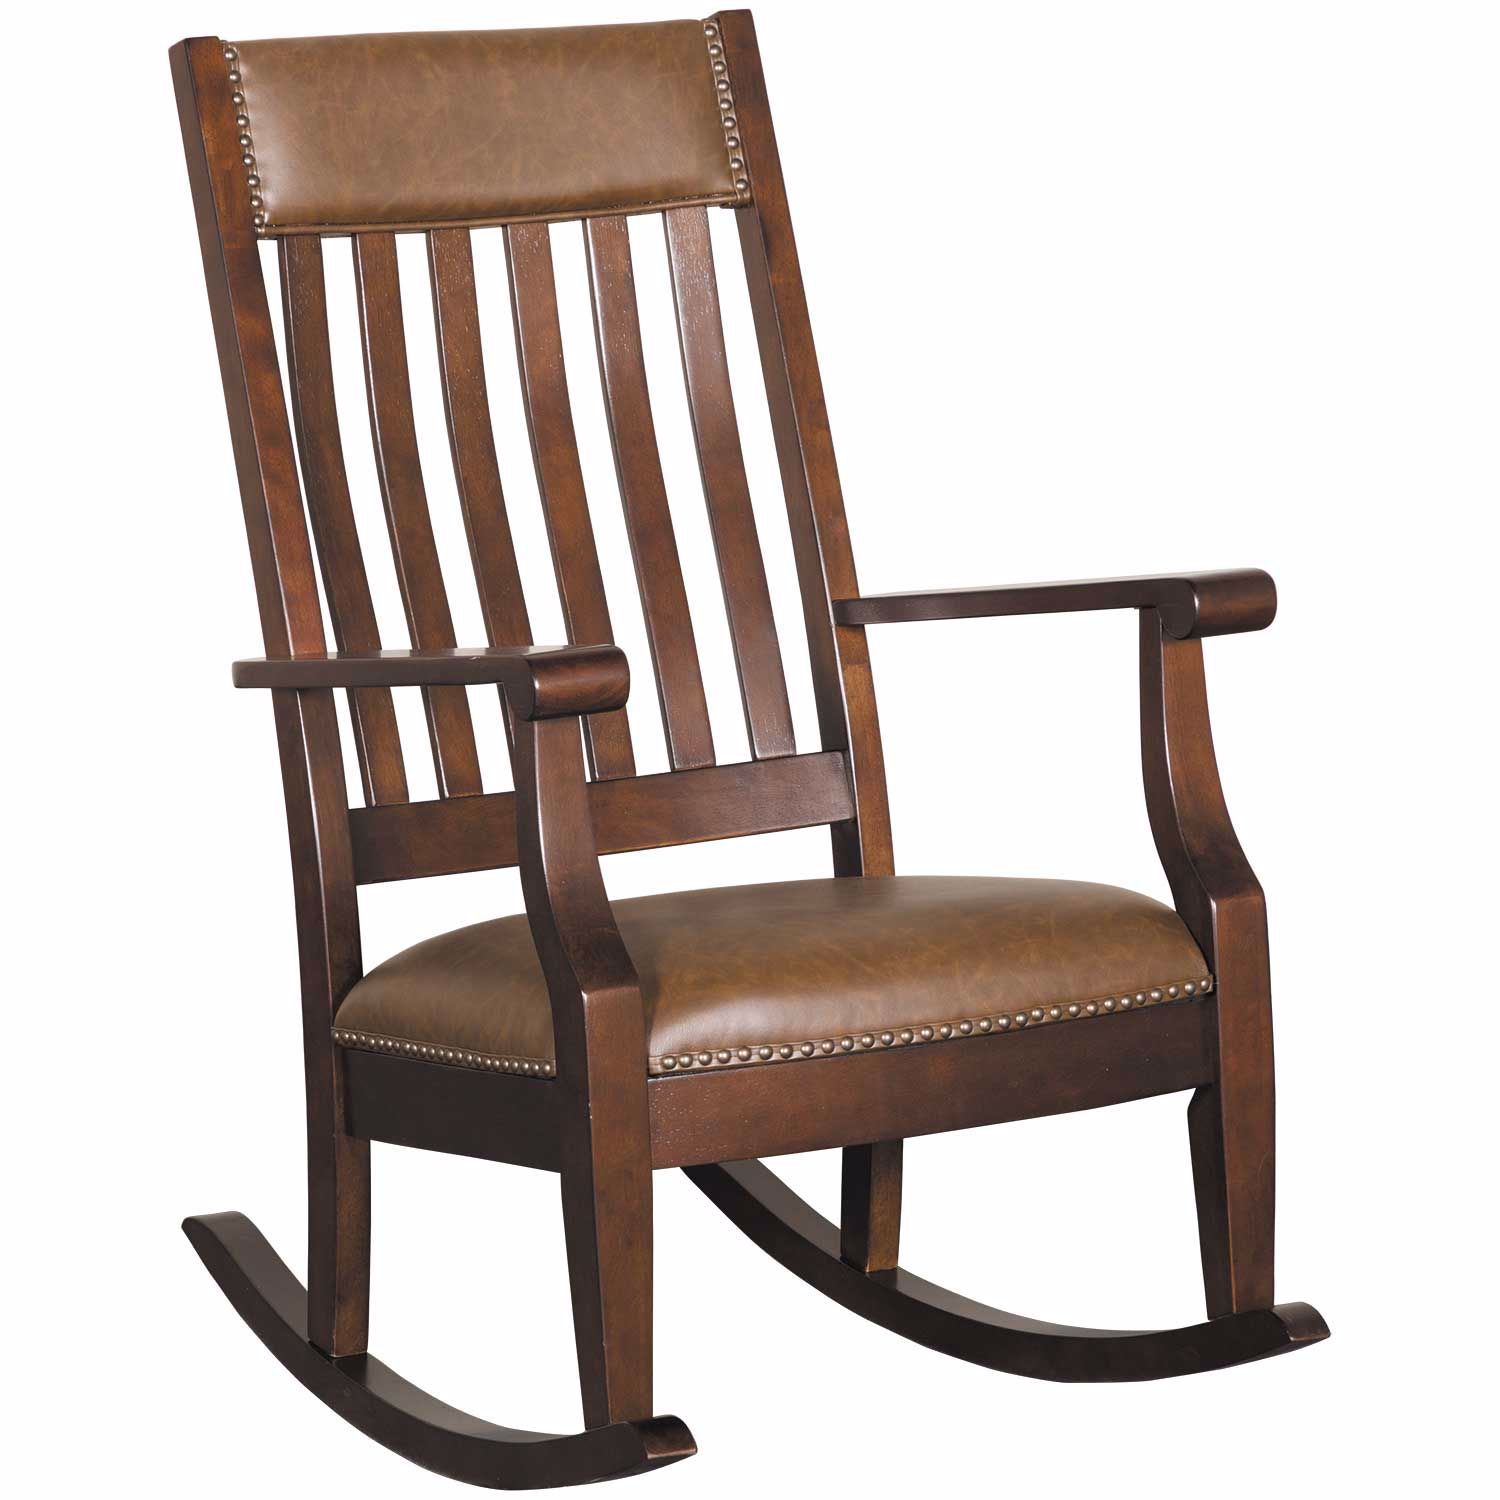 Picture of Wellhouse Rocking Chair, Brown